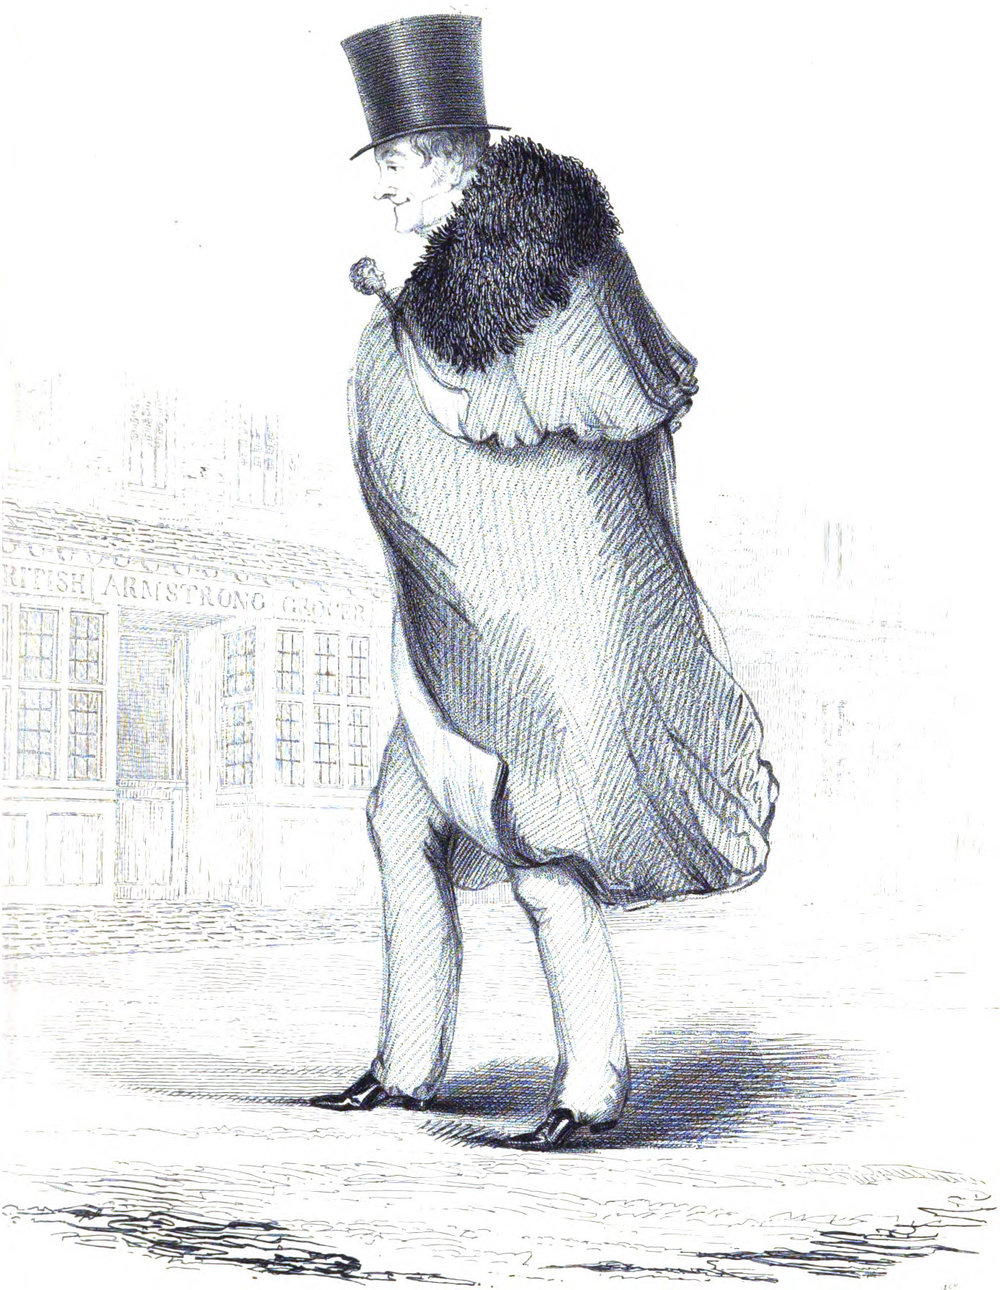 George Bryan Brummell, also known as Beau Brummell, in his later years, wearing full length trousers.